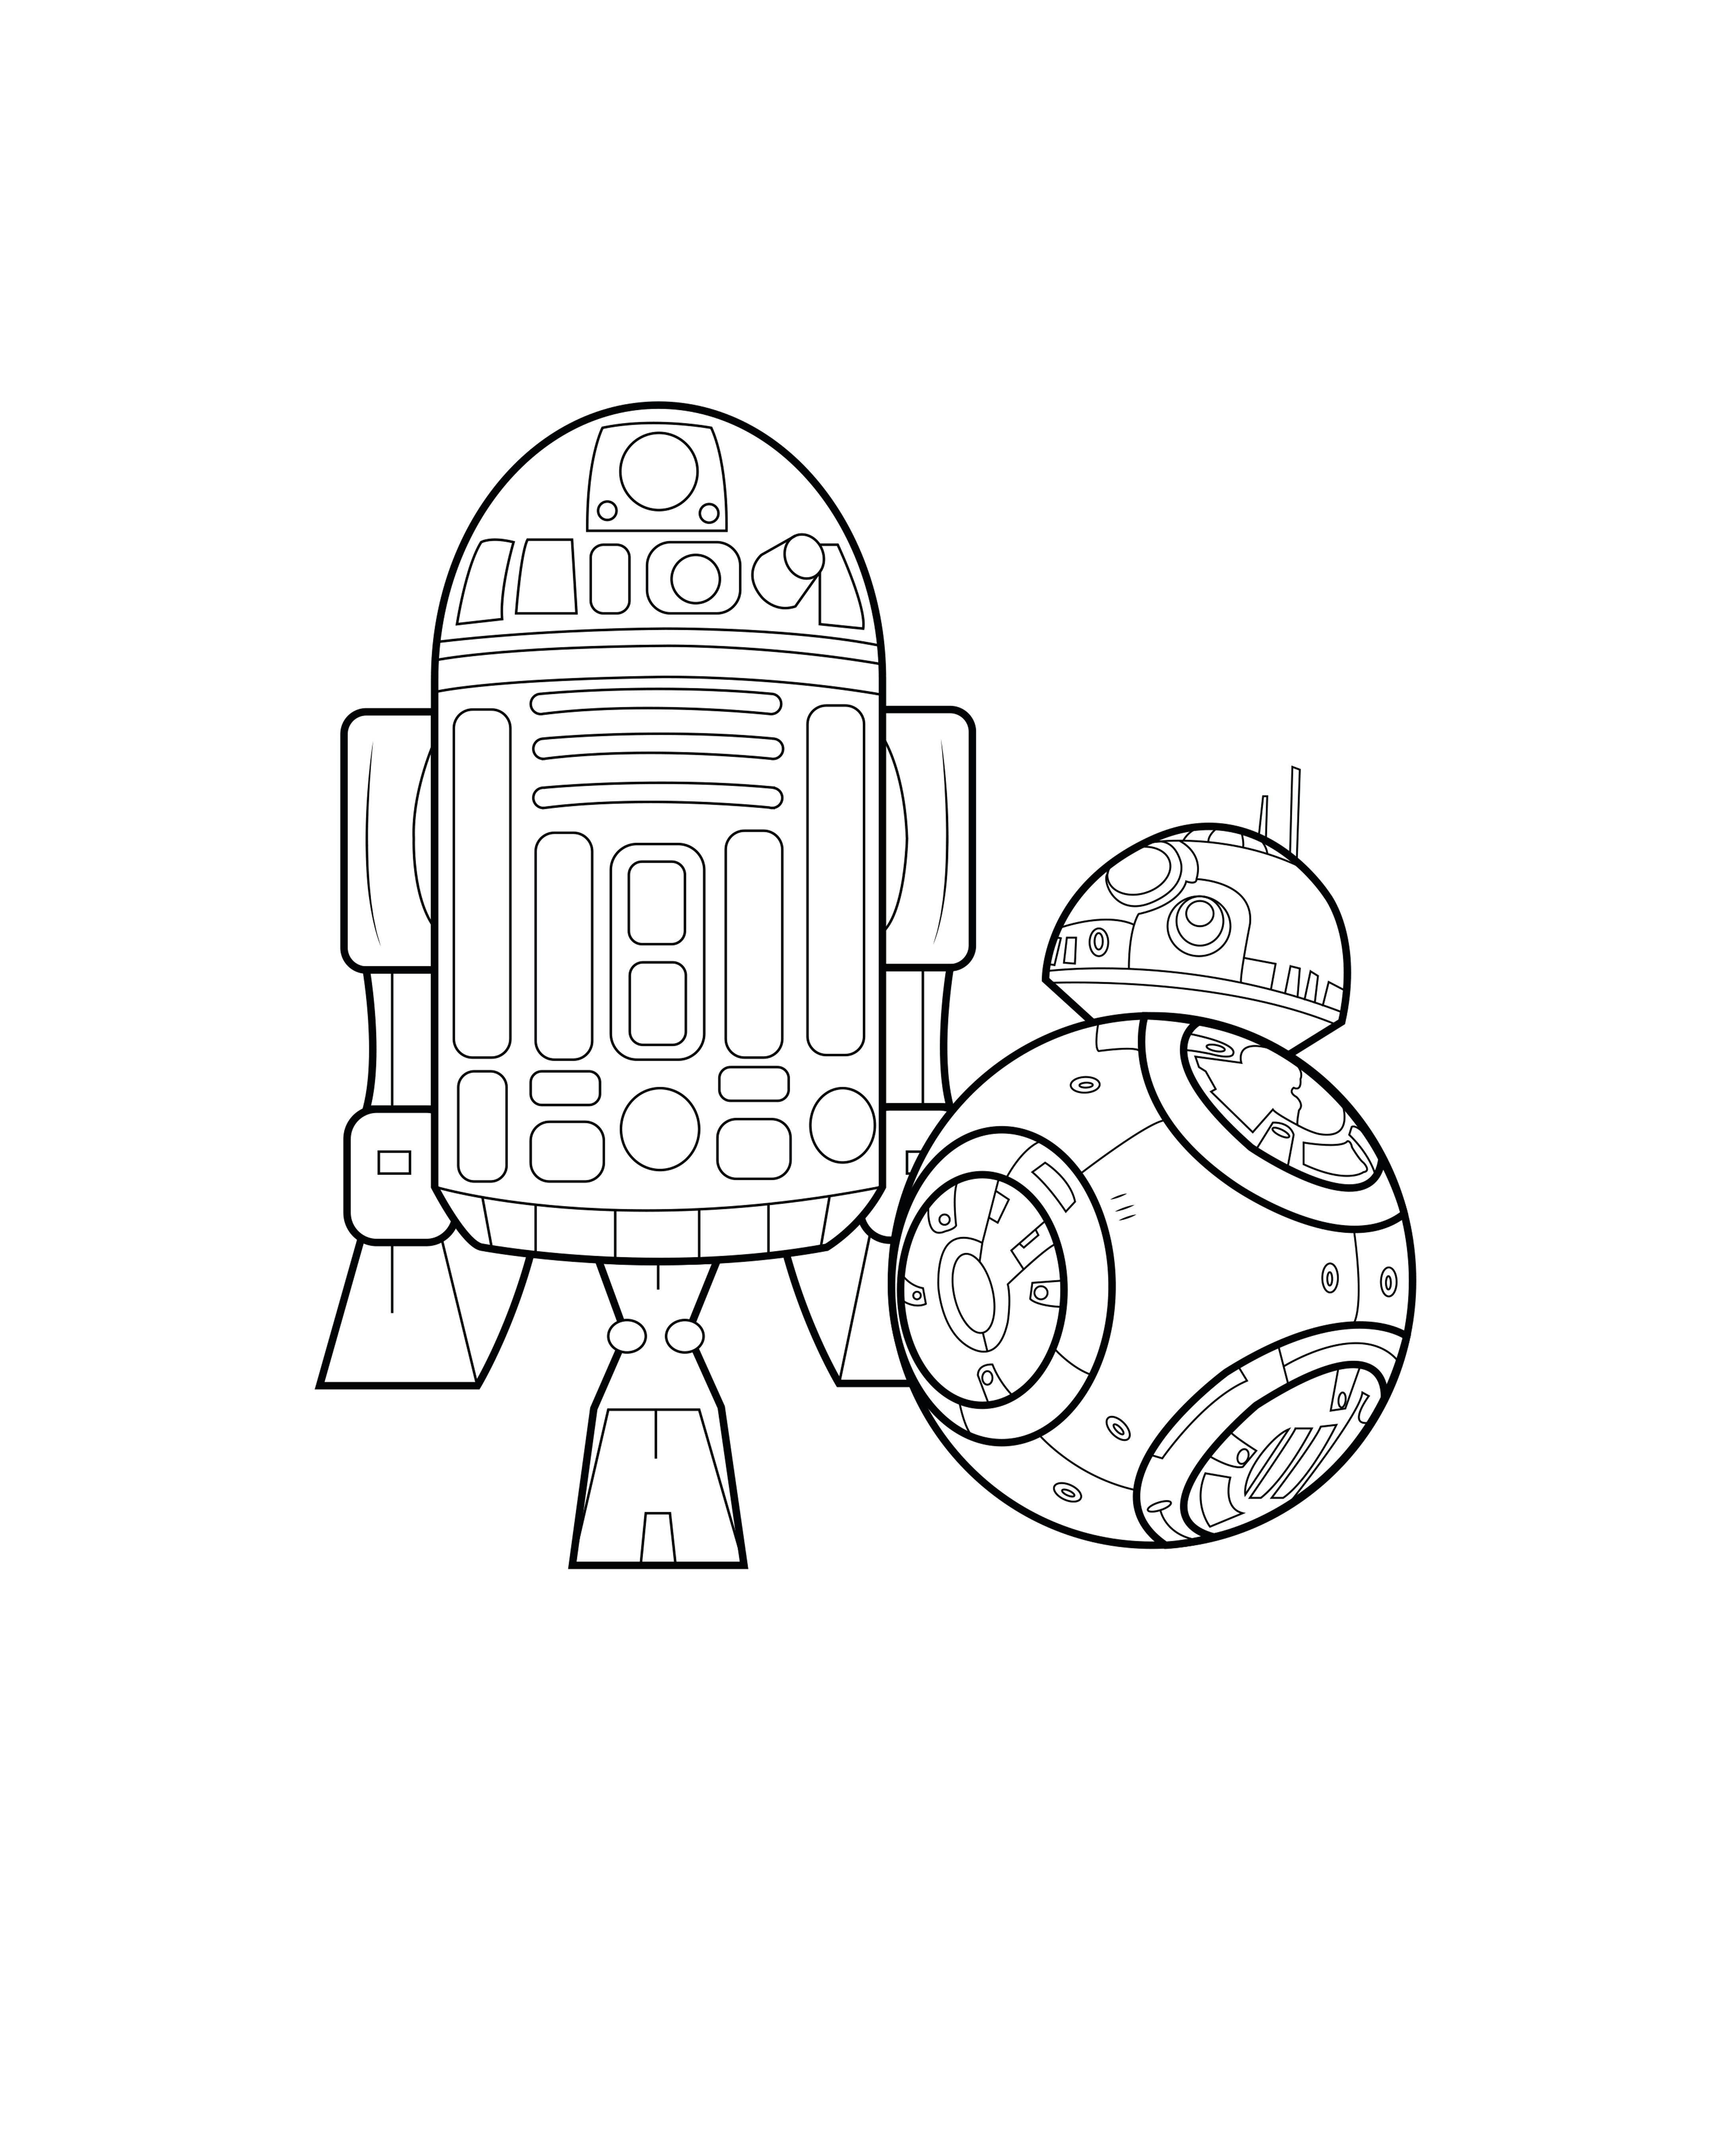 picture regarding R2d2 Printable identified as R2d2 Coloring Web pages Printable at  Absolutely free for